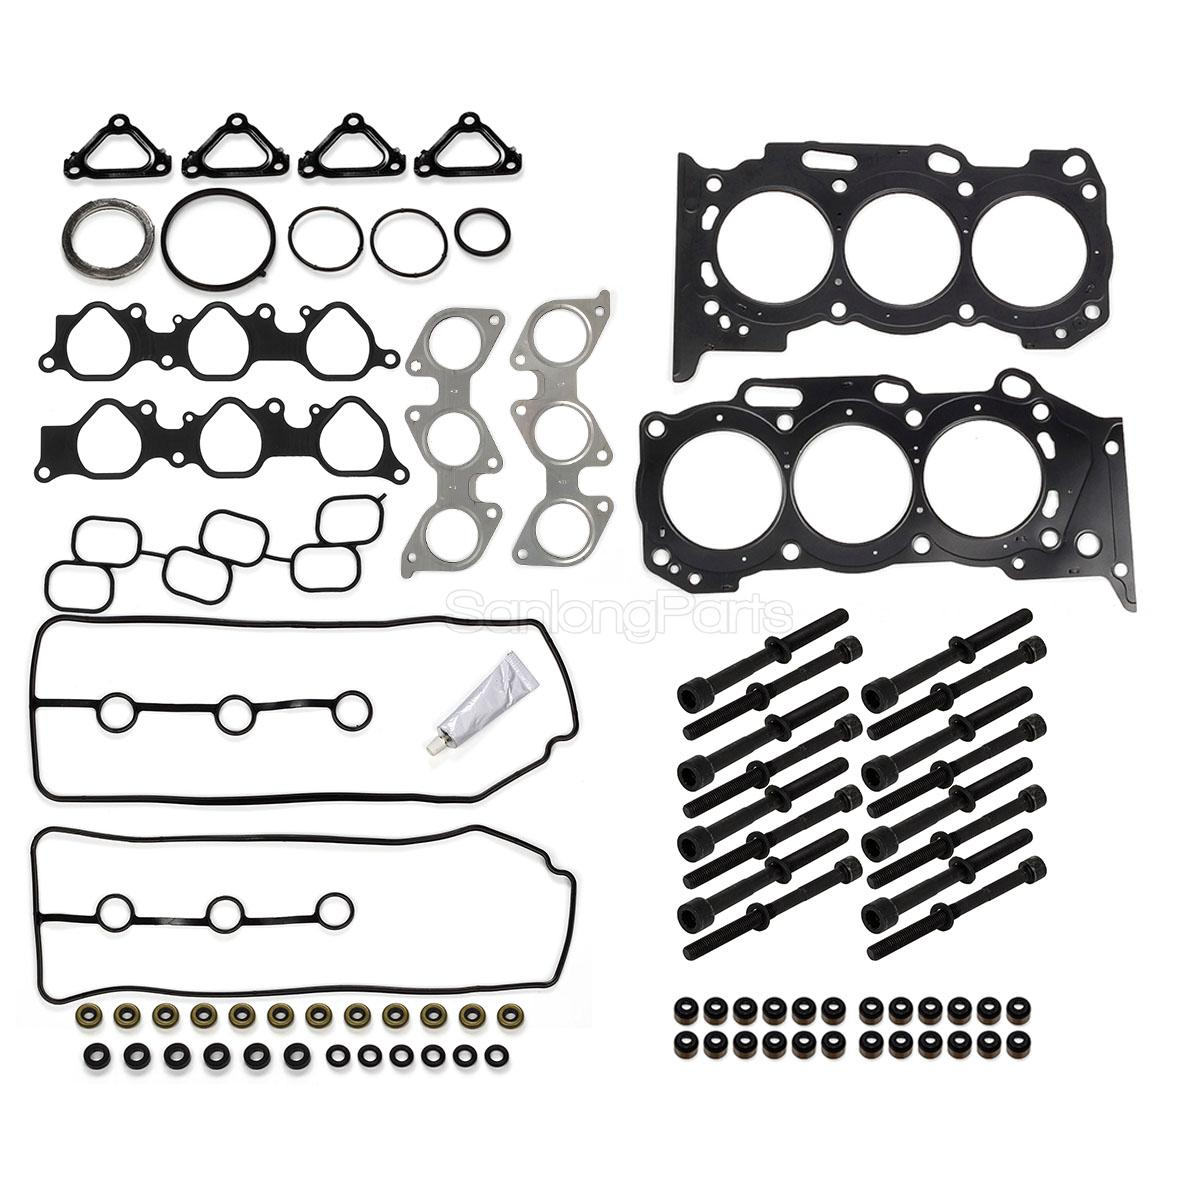 Vincos Head Gasket Bolts Set Fits For Toyota 4runner